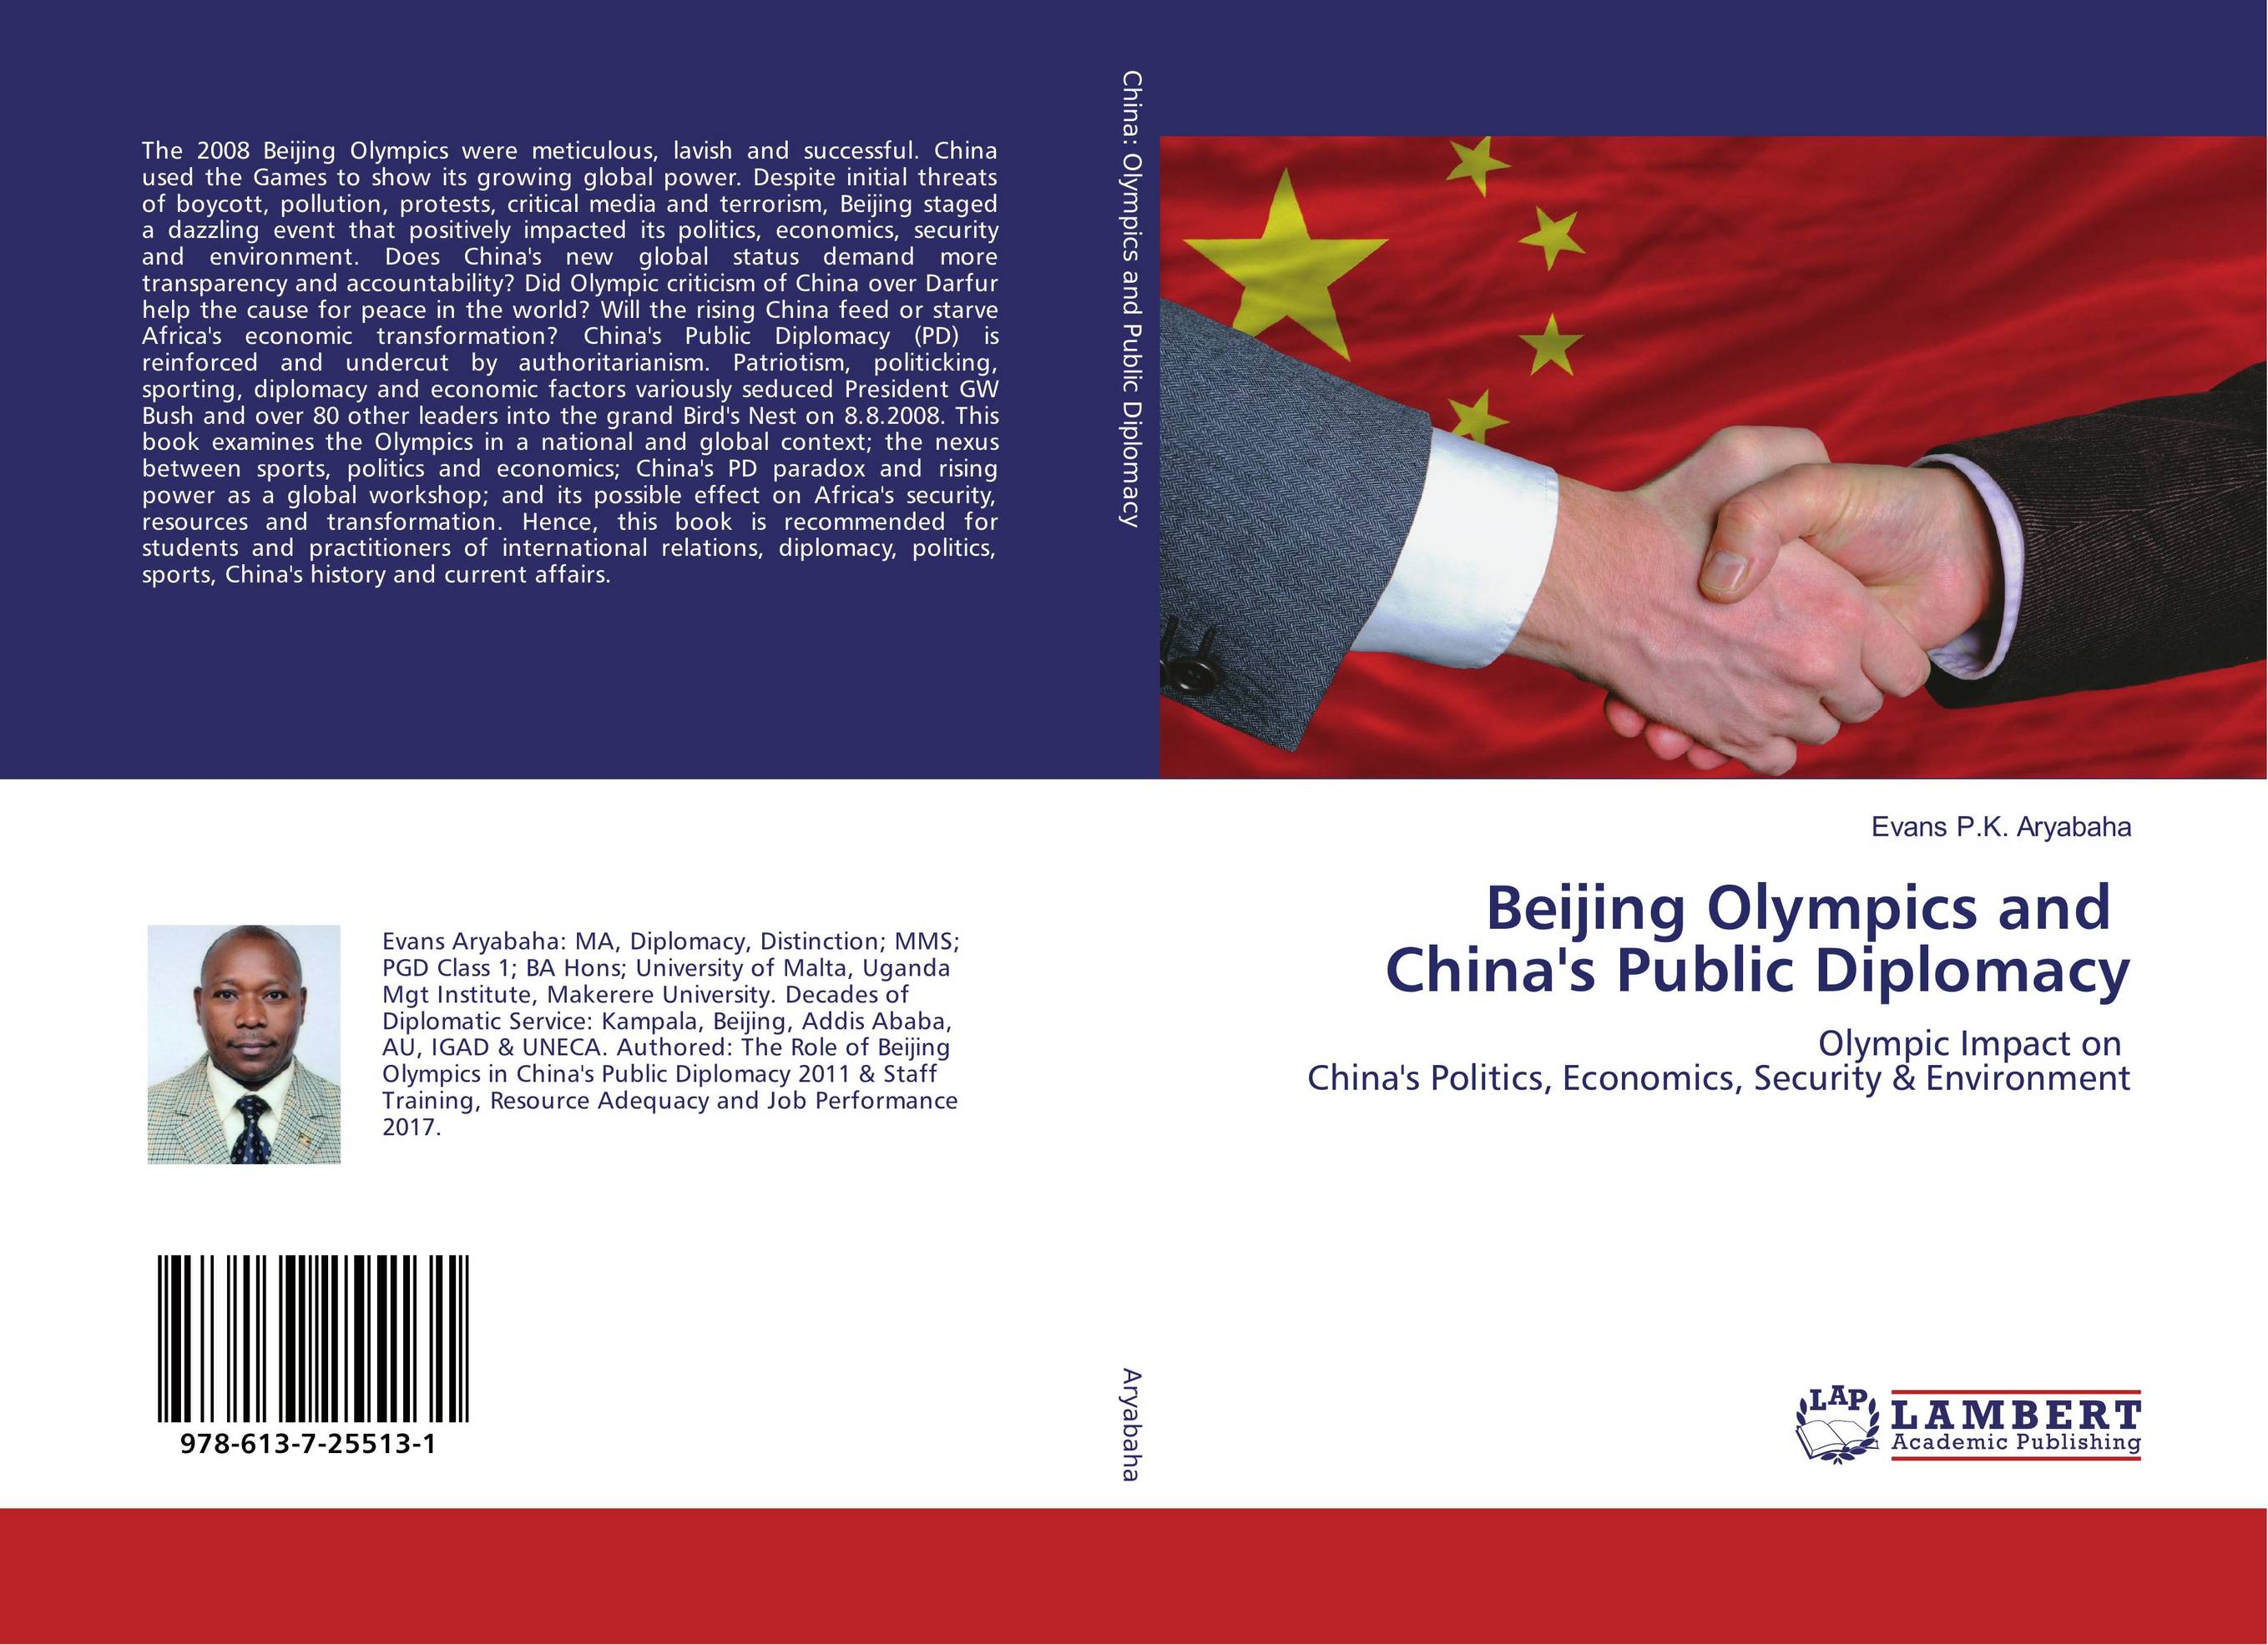 the 2008 olympics impact on china essay Academic olympic papers available online selection a list of academic articles available online, indexed by olympic expertise and by  the olympic studies in china (2008) hai ren, beijing sport university, people's republic of china  the impact of bidding to host olympic games on urban development planning (2013.